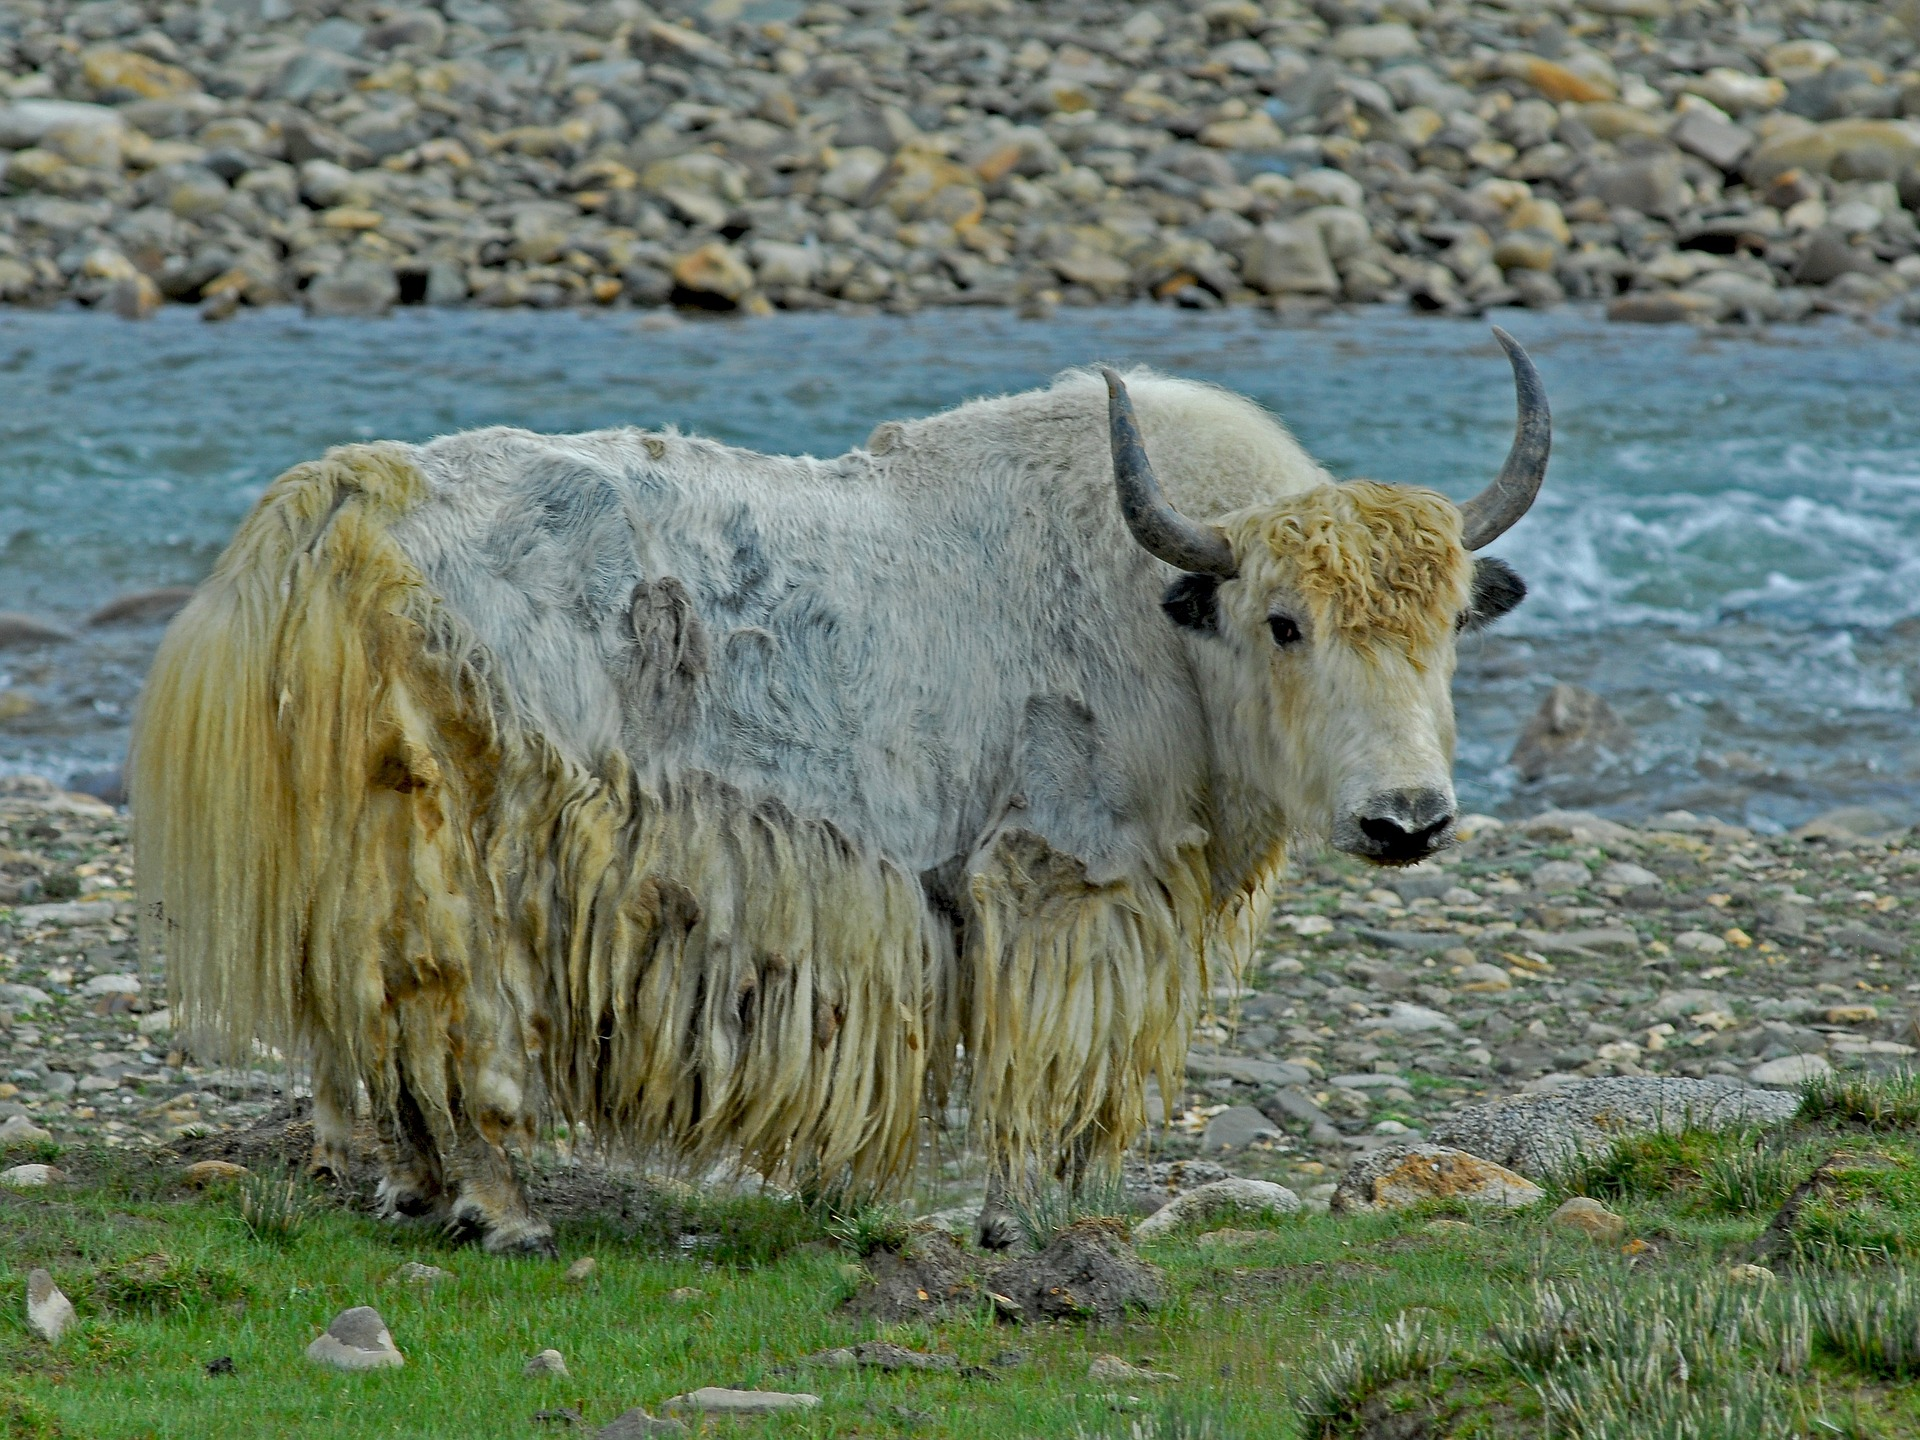 Over 300 Yaks starve to death in India